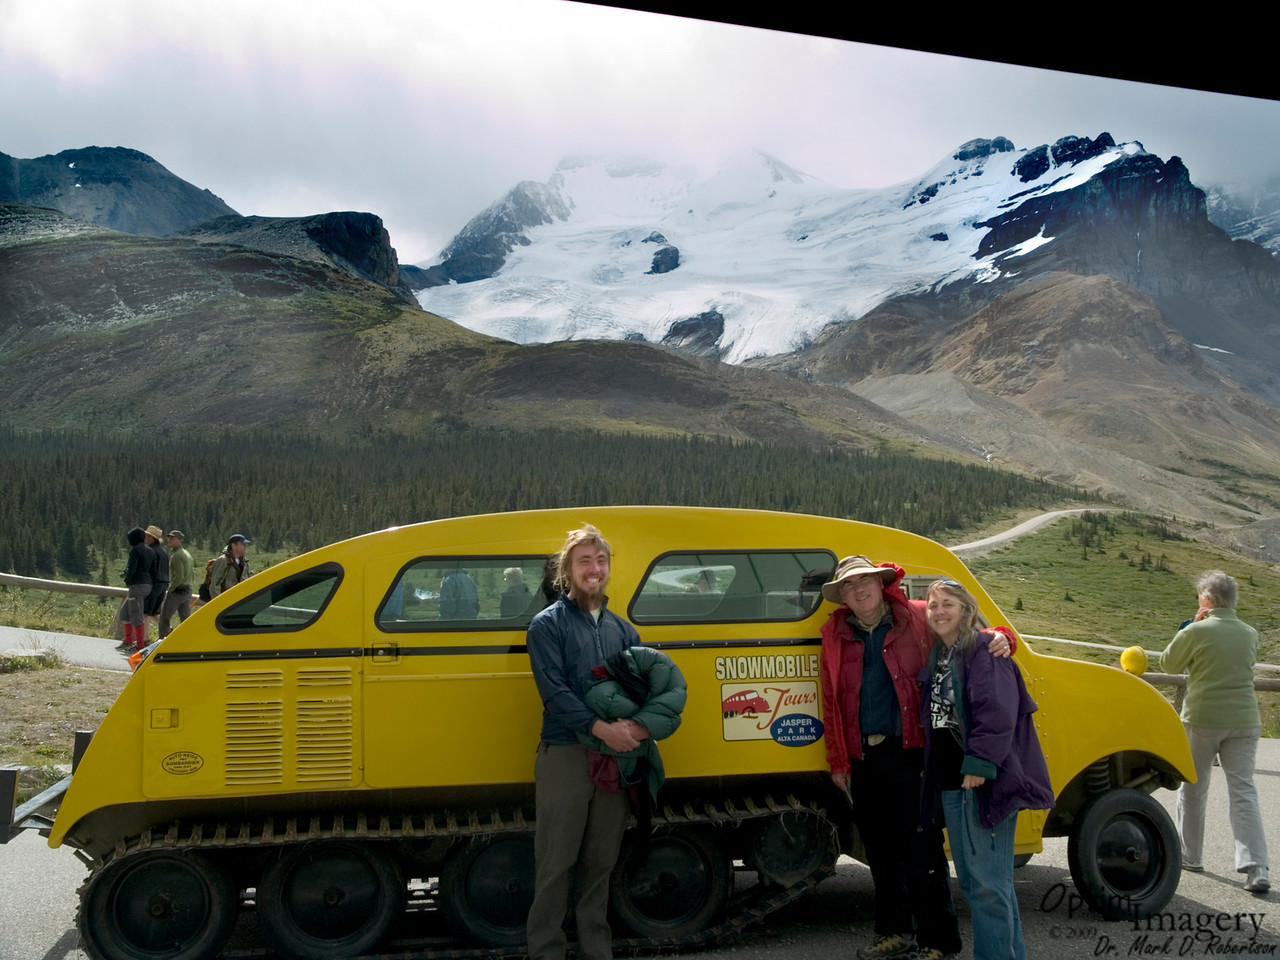 Thanks for taking this photo, Bri.  We are waiting for a bus to take us to a snow bus lot so that we can go out onto the glacier.  They used snow-cats like this one in the 1950's or so, but now have more modern vehicles for the traverse.